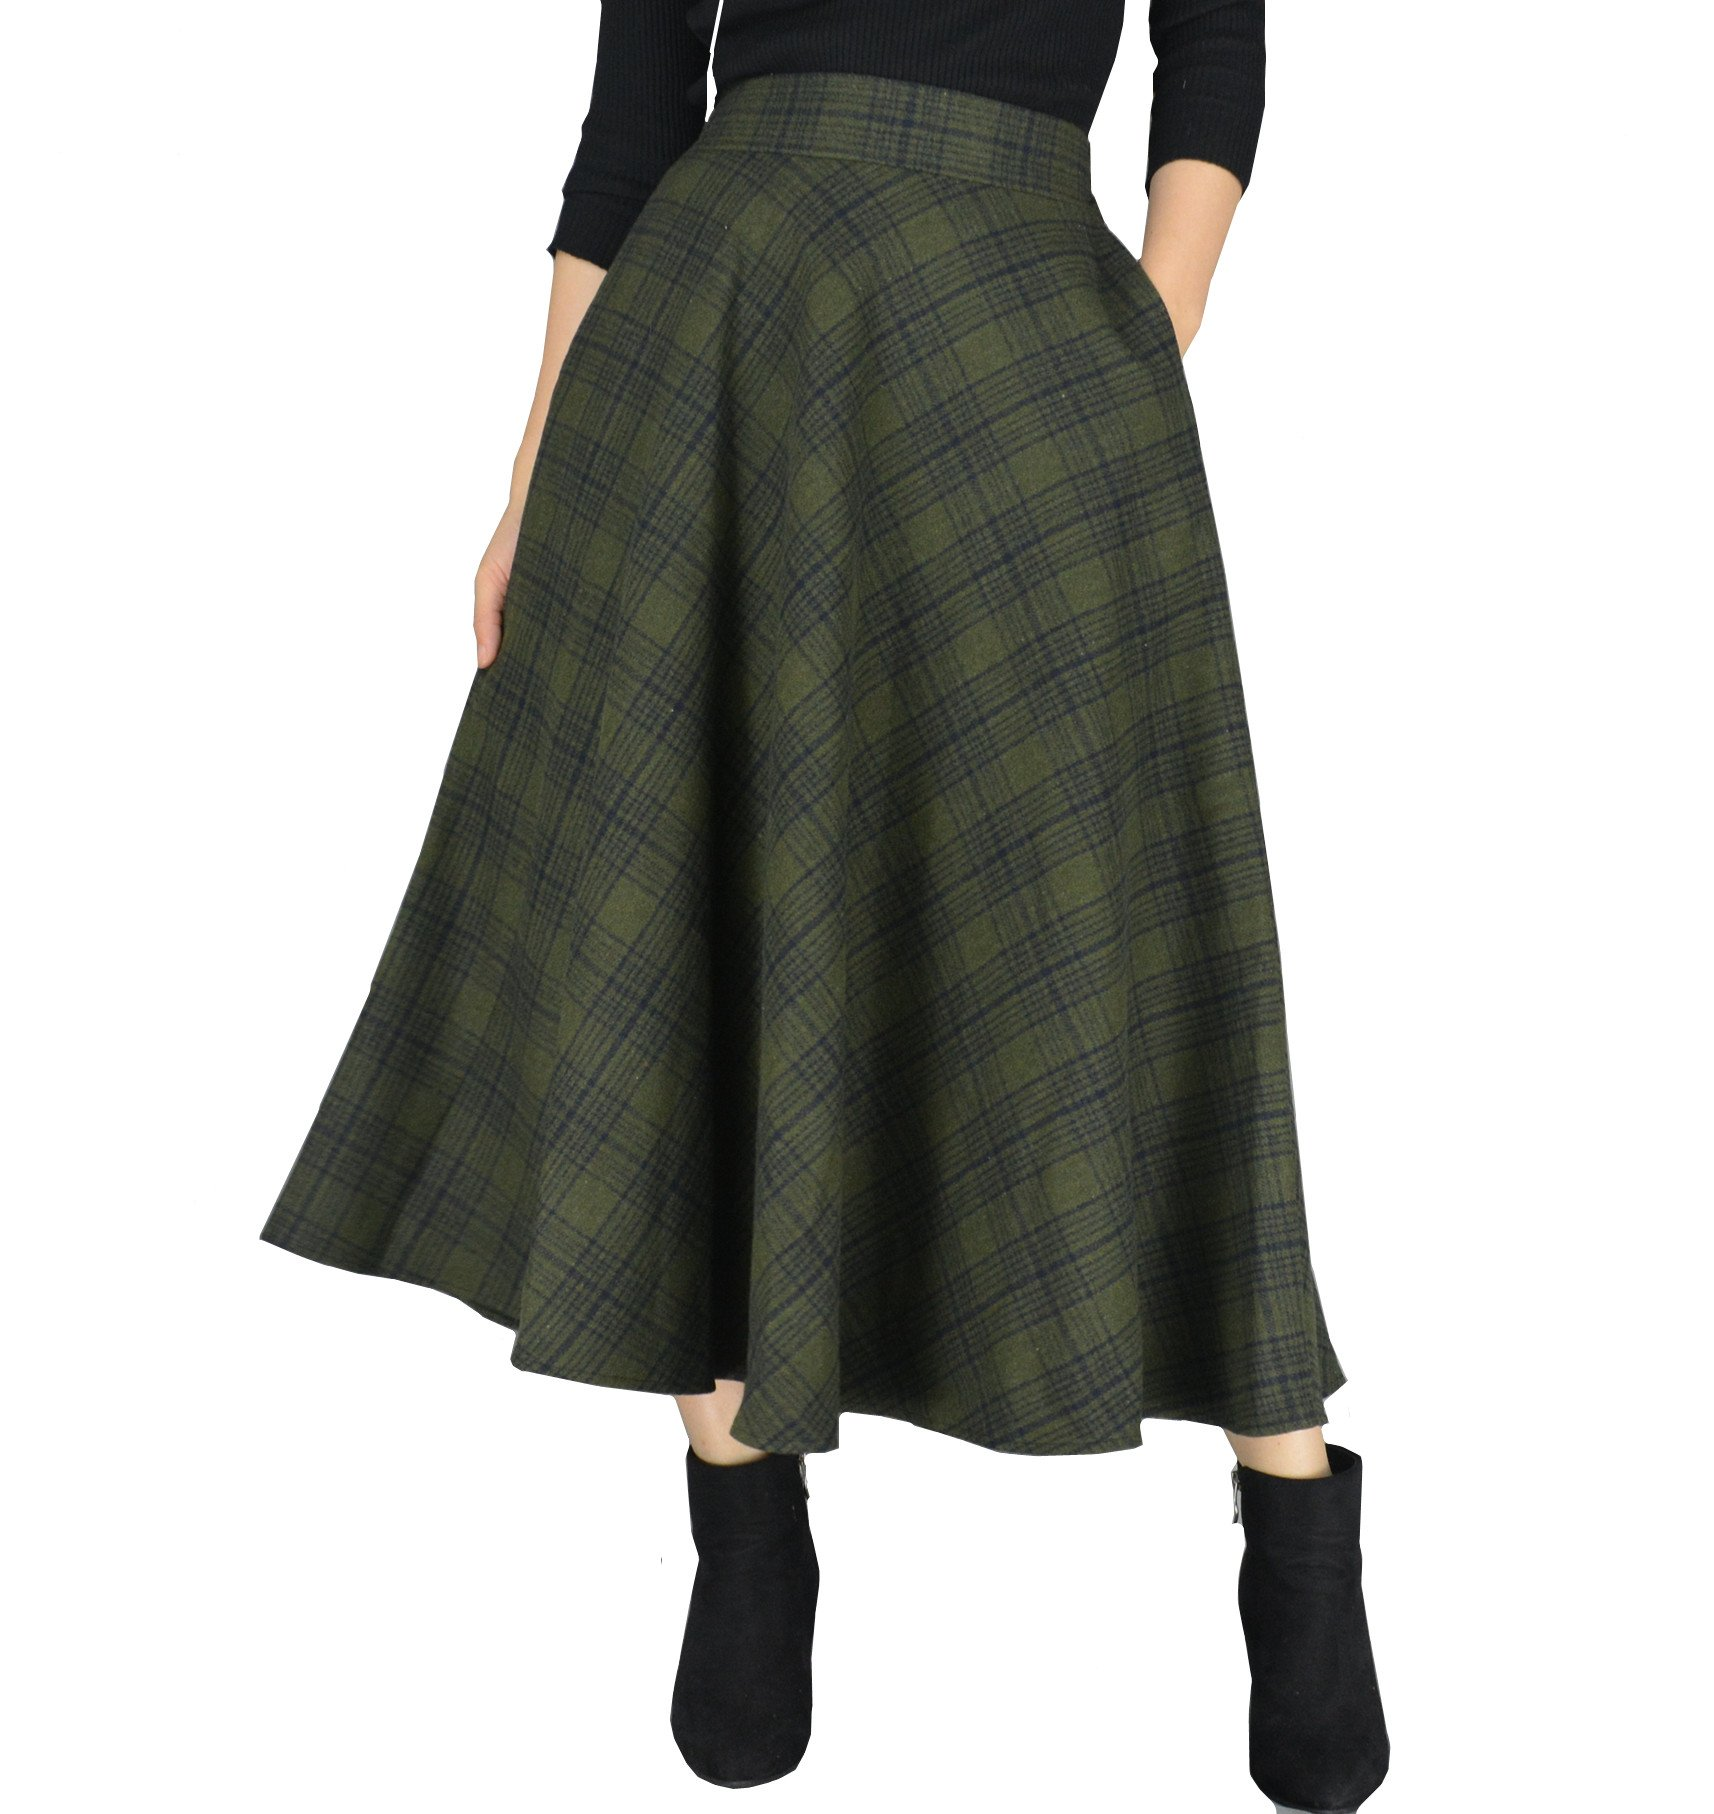 YSJ Women's Wool Midi Skirt A-Line Pleated Vintage Plaid Winter Swing Skirts (6, Army Green Long)